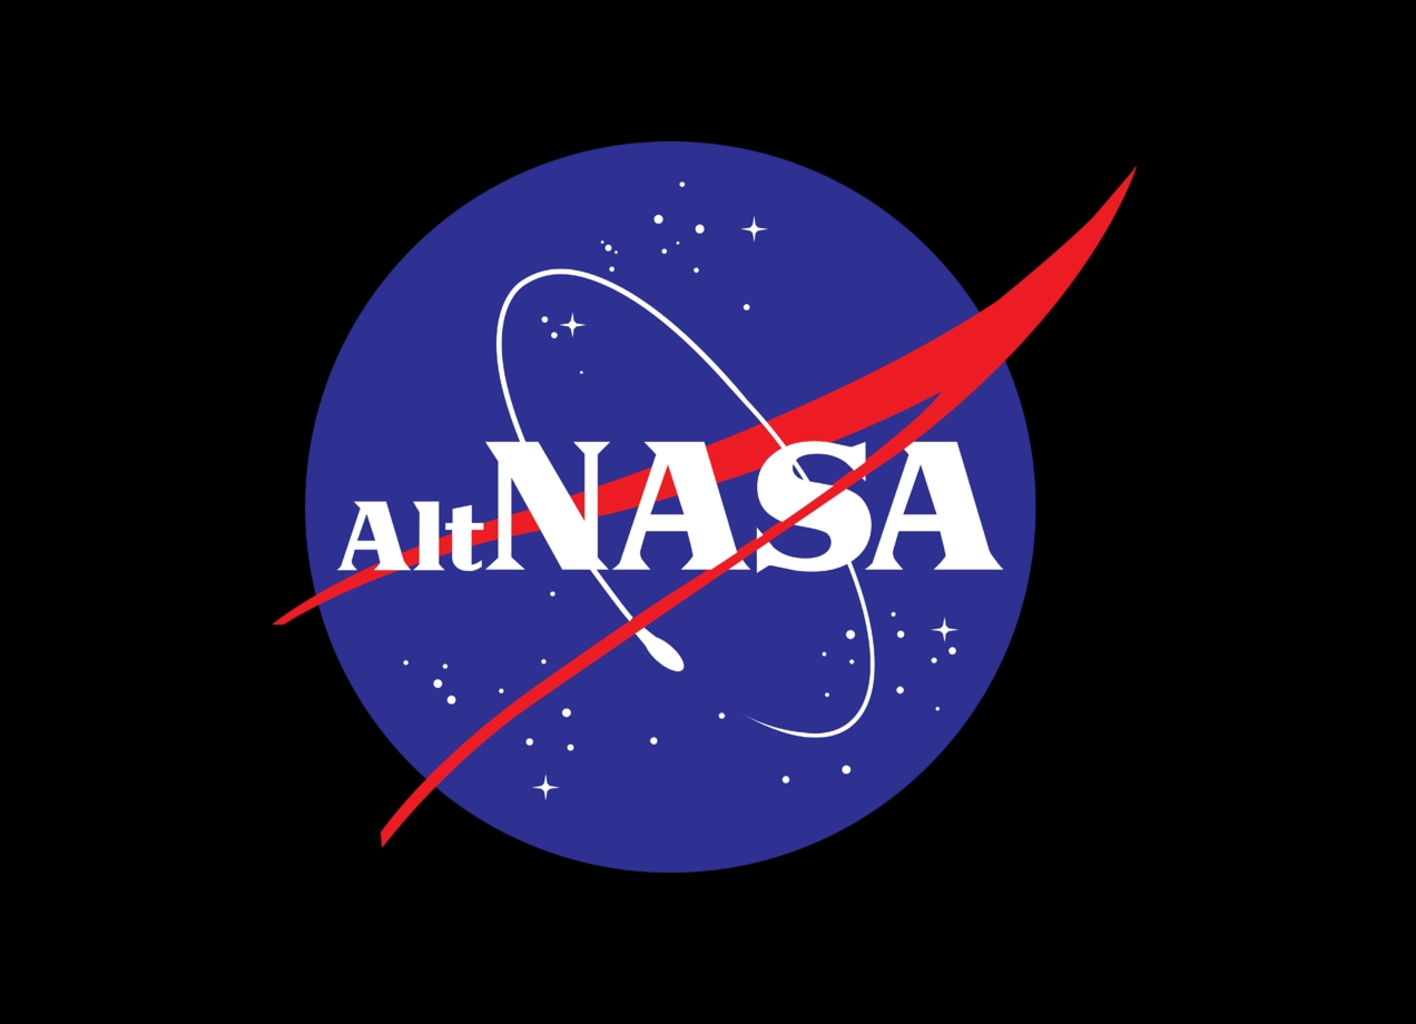 Threadless: ALTNASA